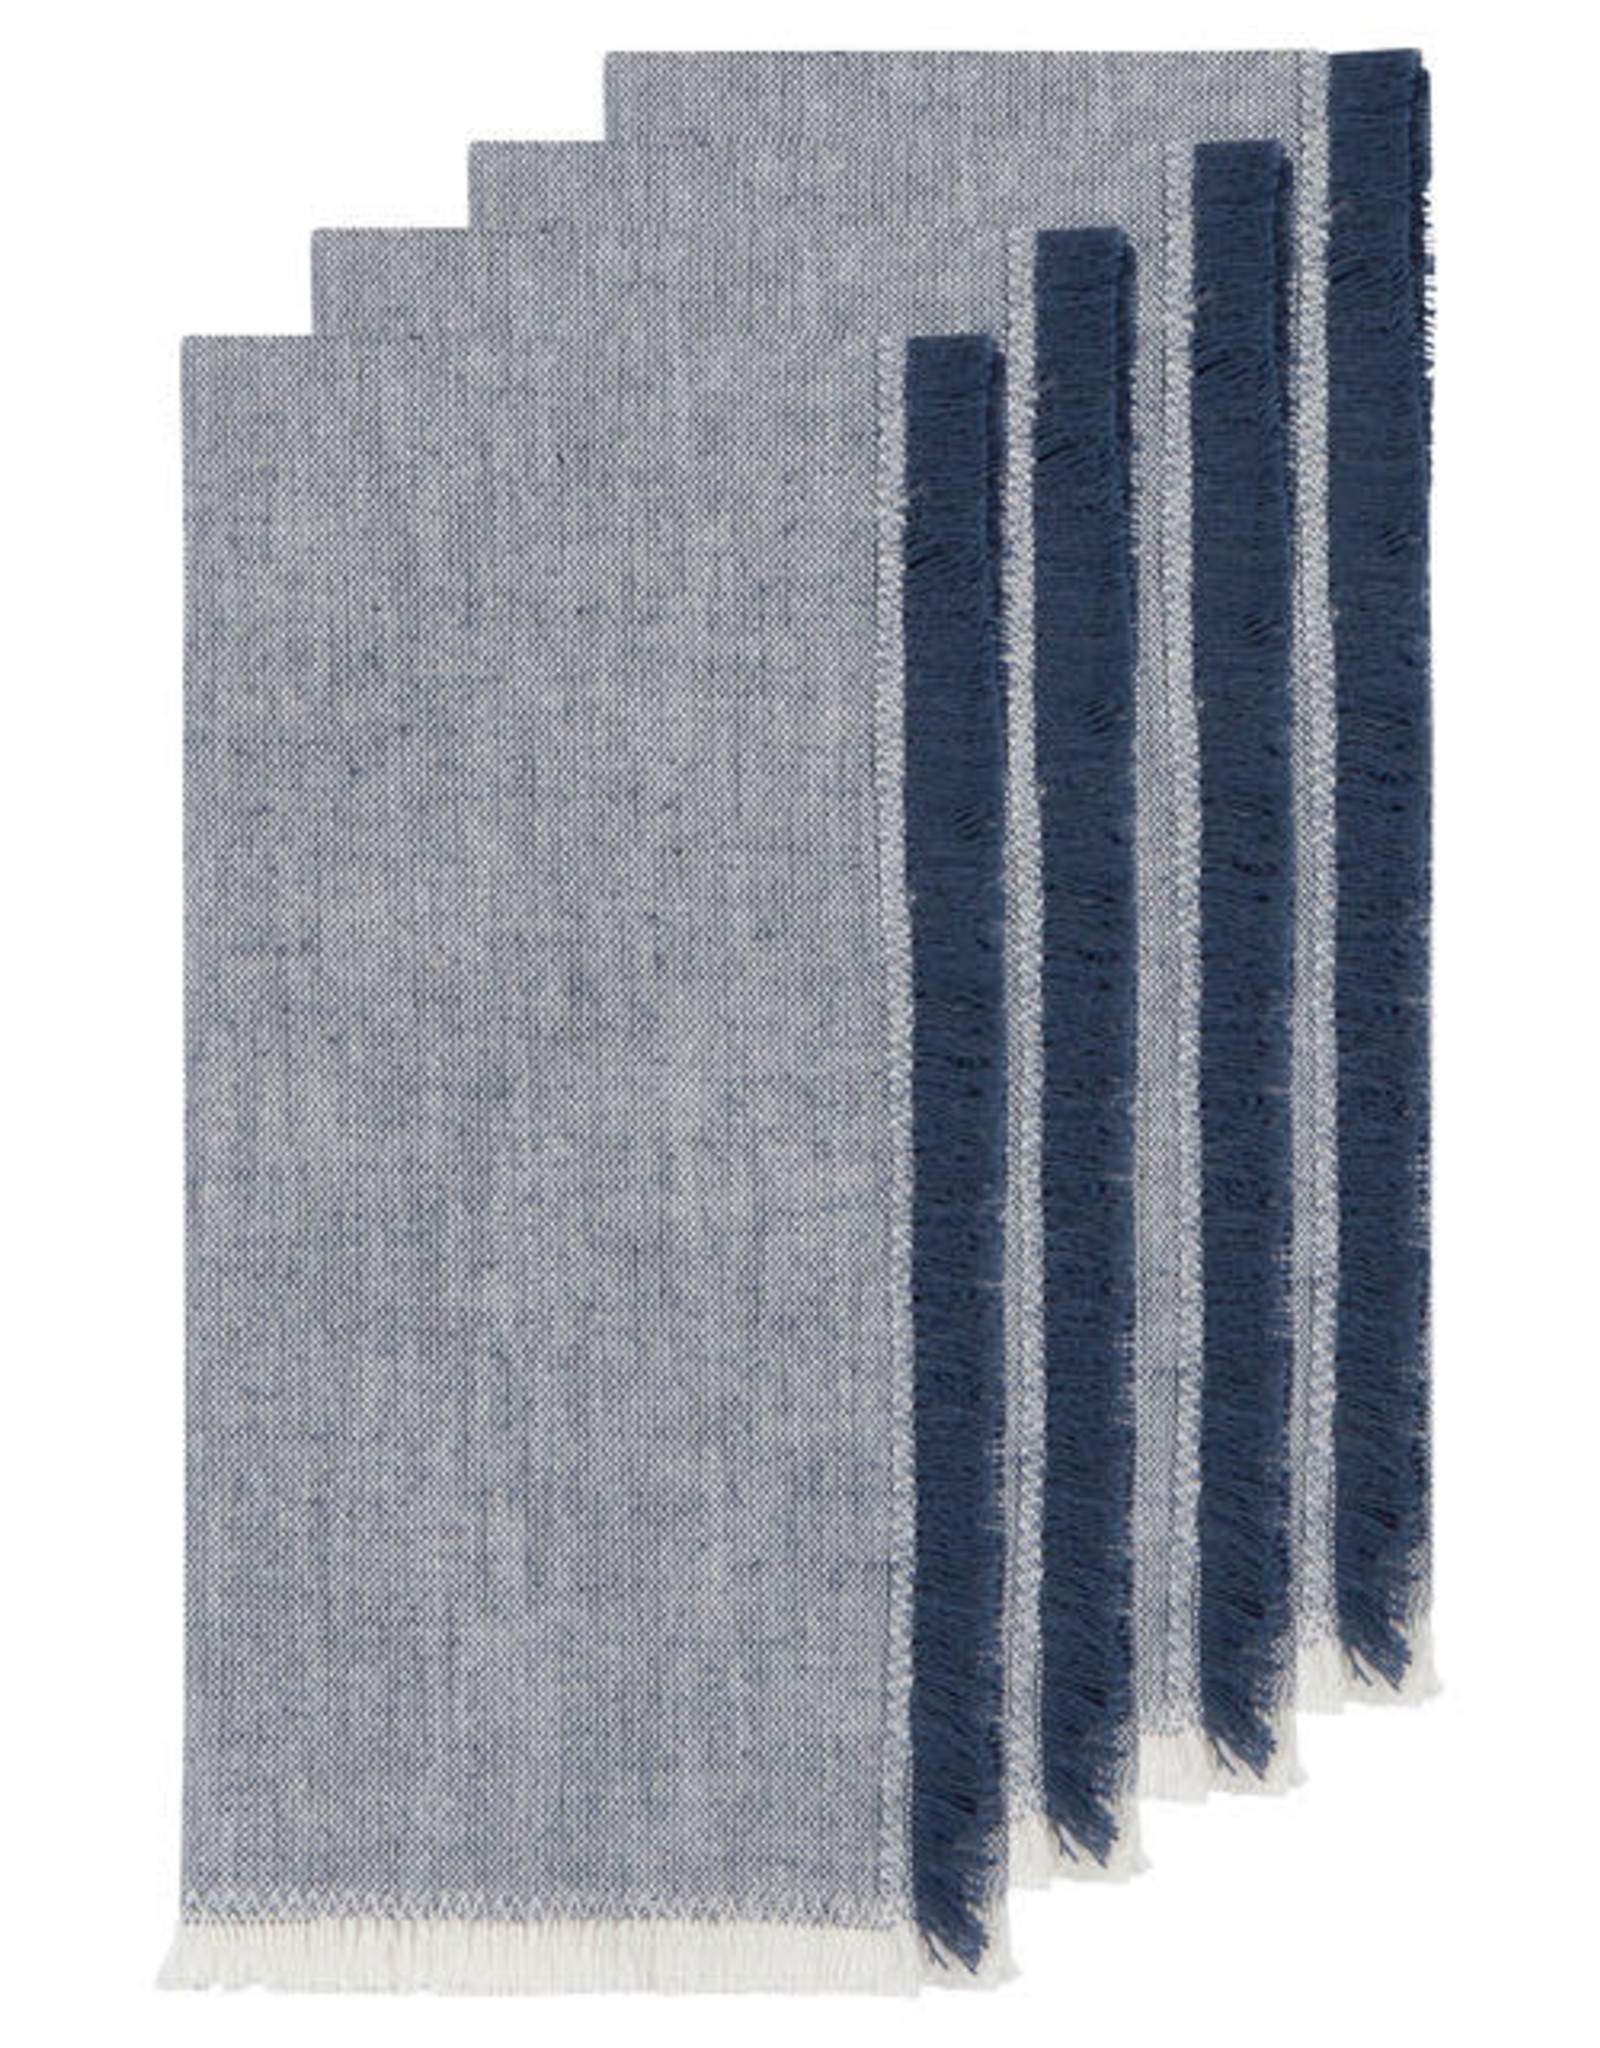 Chambray Heirloom Napkins Set of 4 - Midnight